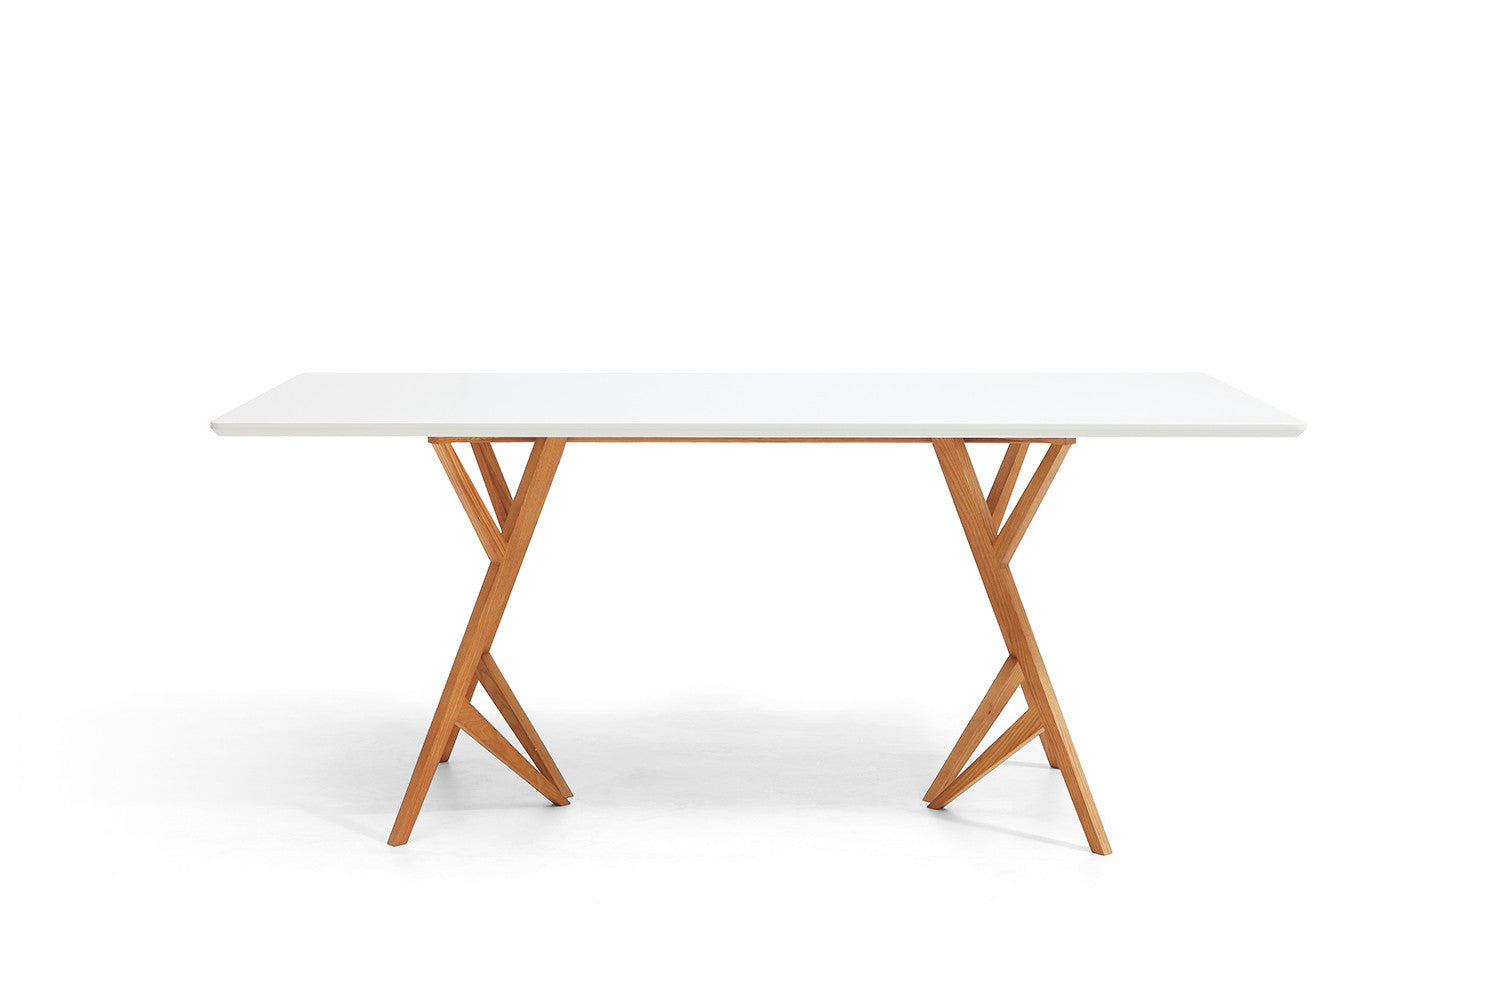 Table de salle manger design scandinave vispa dewarens - Table en bois blanche ...